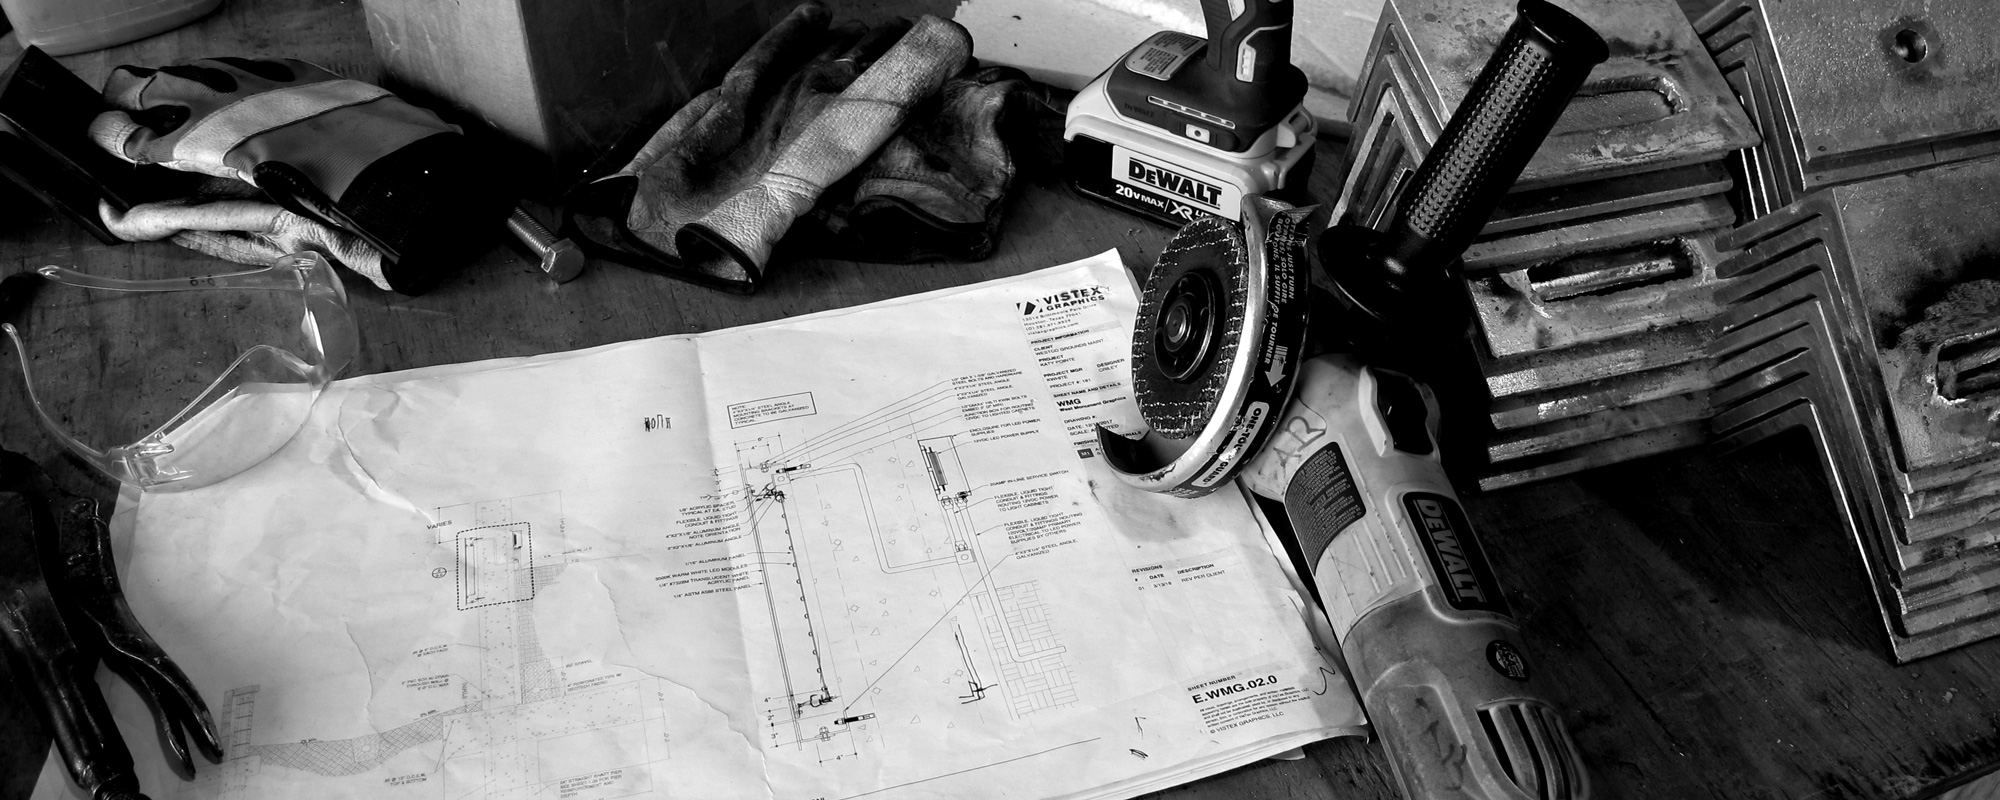 Hand tools, work gloves, and fabrication drawings on work table